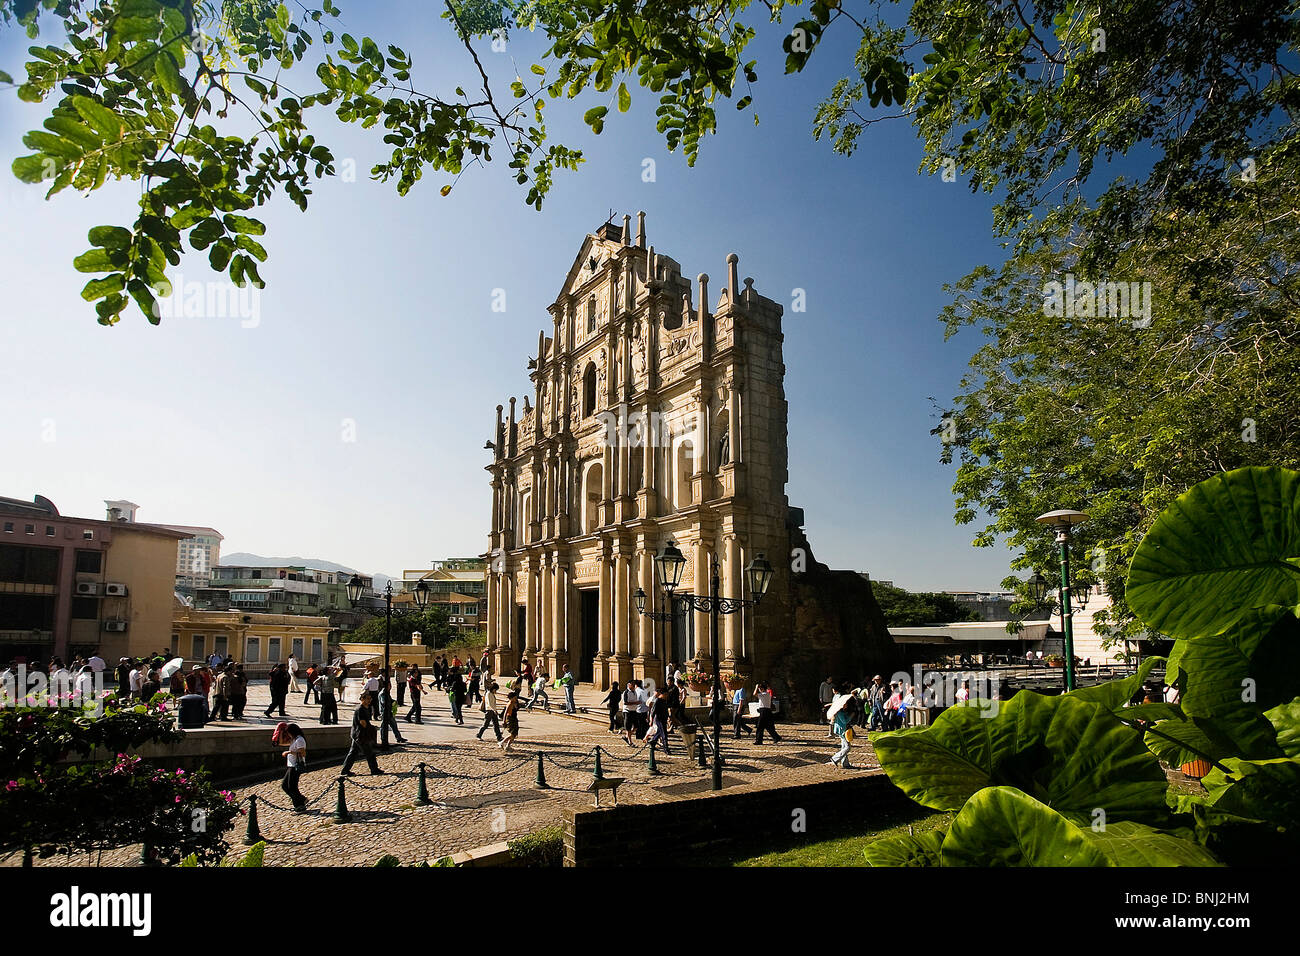 China Asia Macao Macau city ruins church St Paul UNESCO world cultural heritage facade tourist - Stock Image